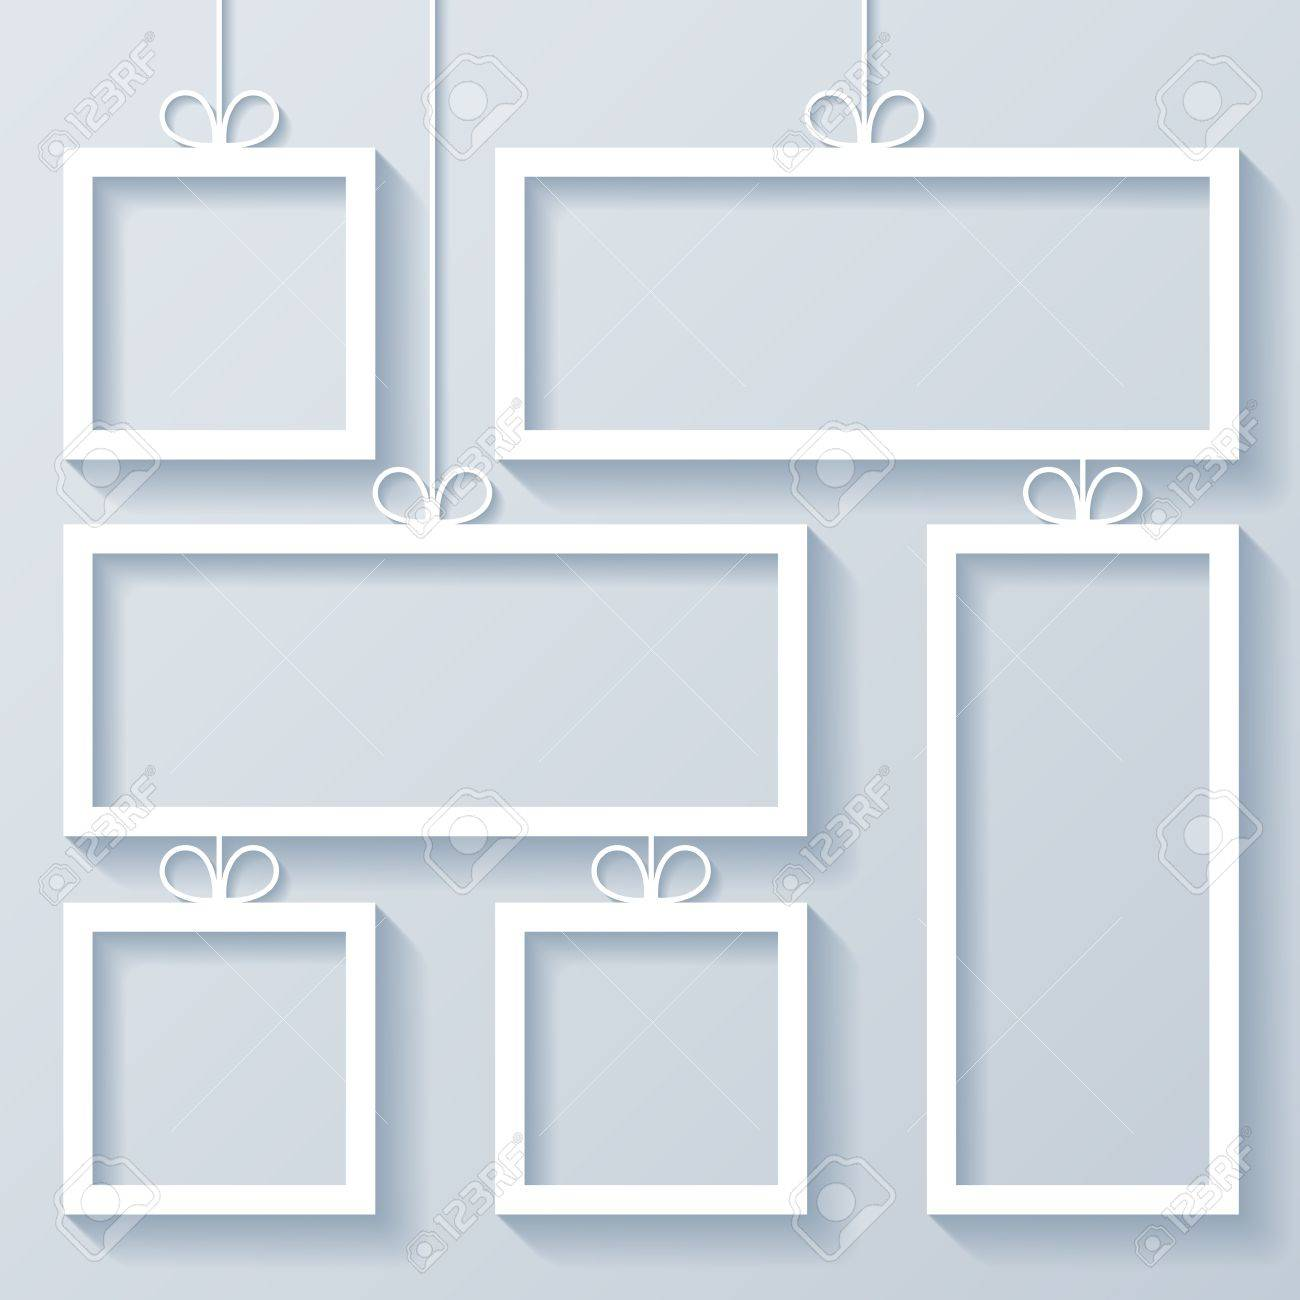 Group Of White Frames With Bow On White Background Royalty Free ...